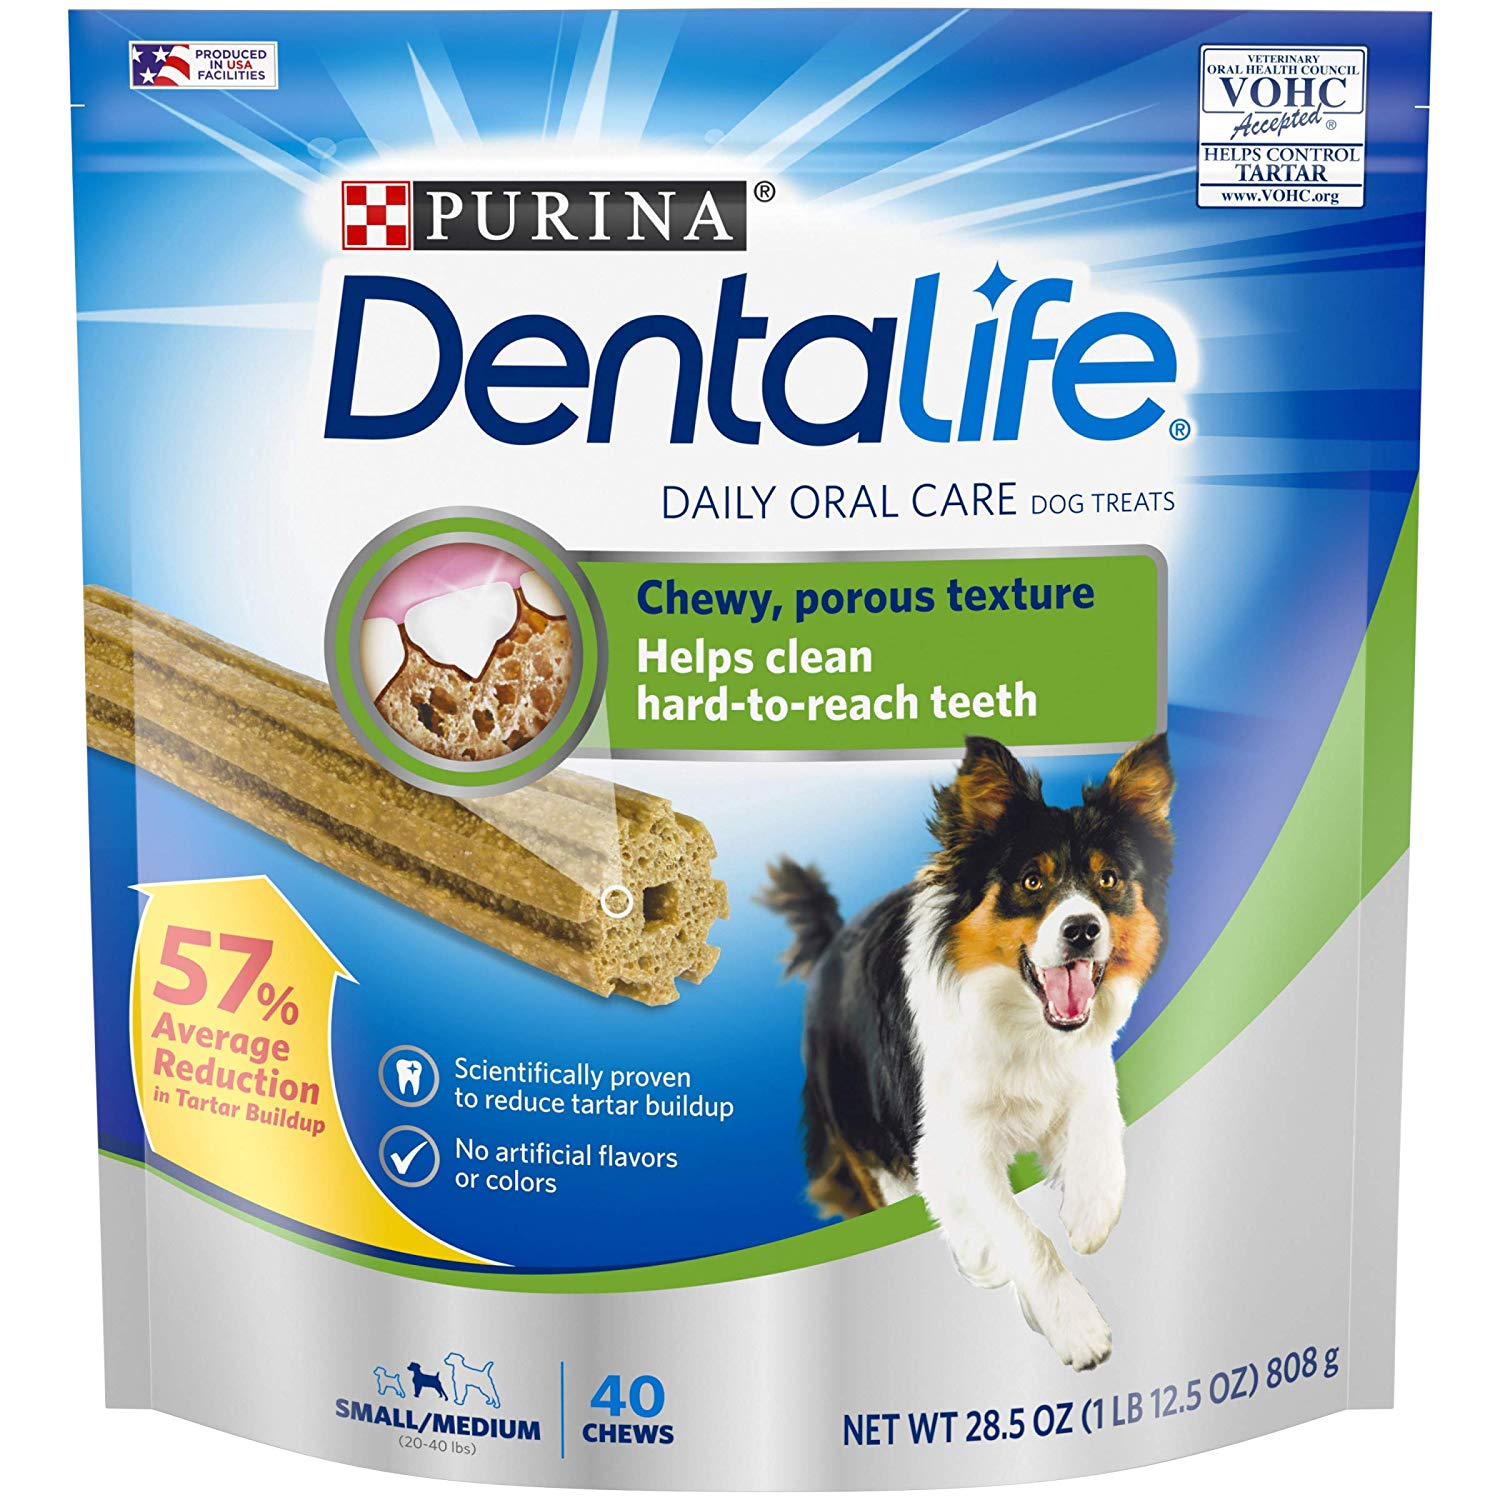 purina dentalife